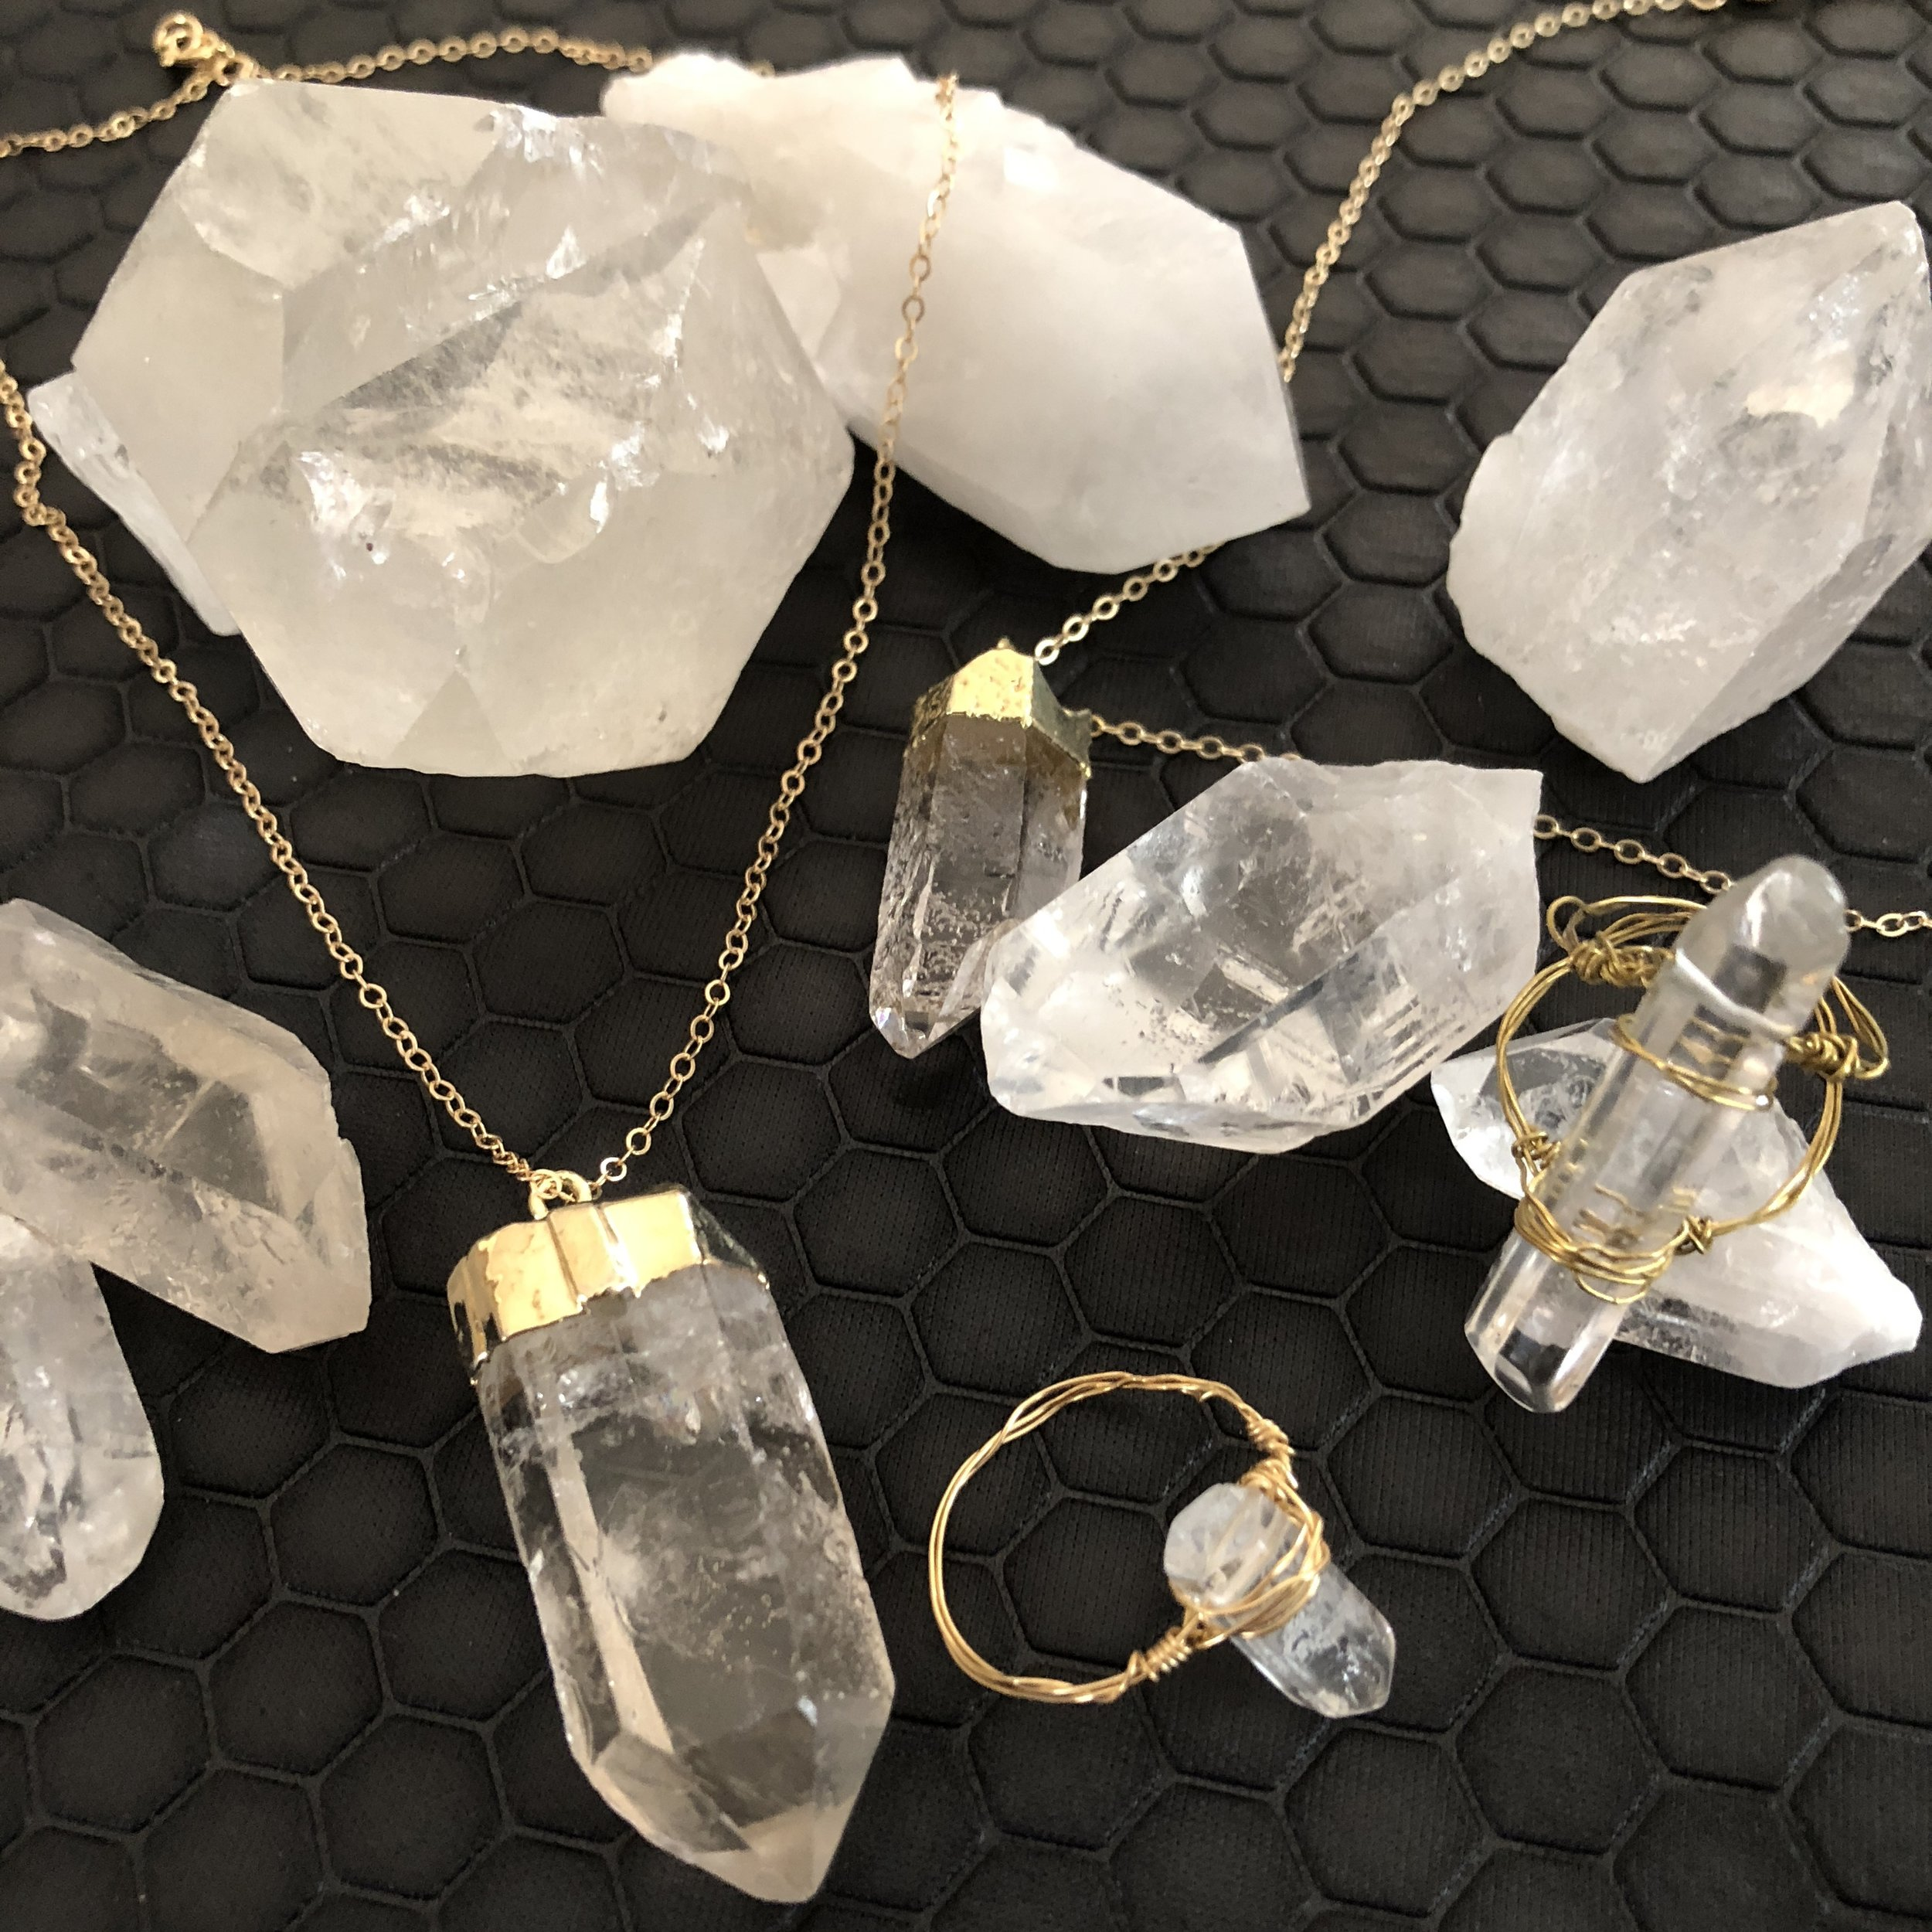 Crystals - 100% Pure LoveCrystal selection varies. No two crystals are alike which adds a uniqueness to your Jesus Piece. The crystals are imperfectly perfect.